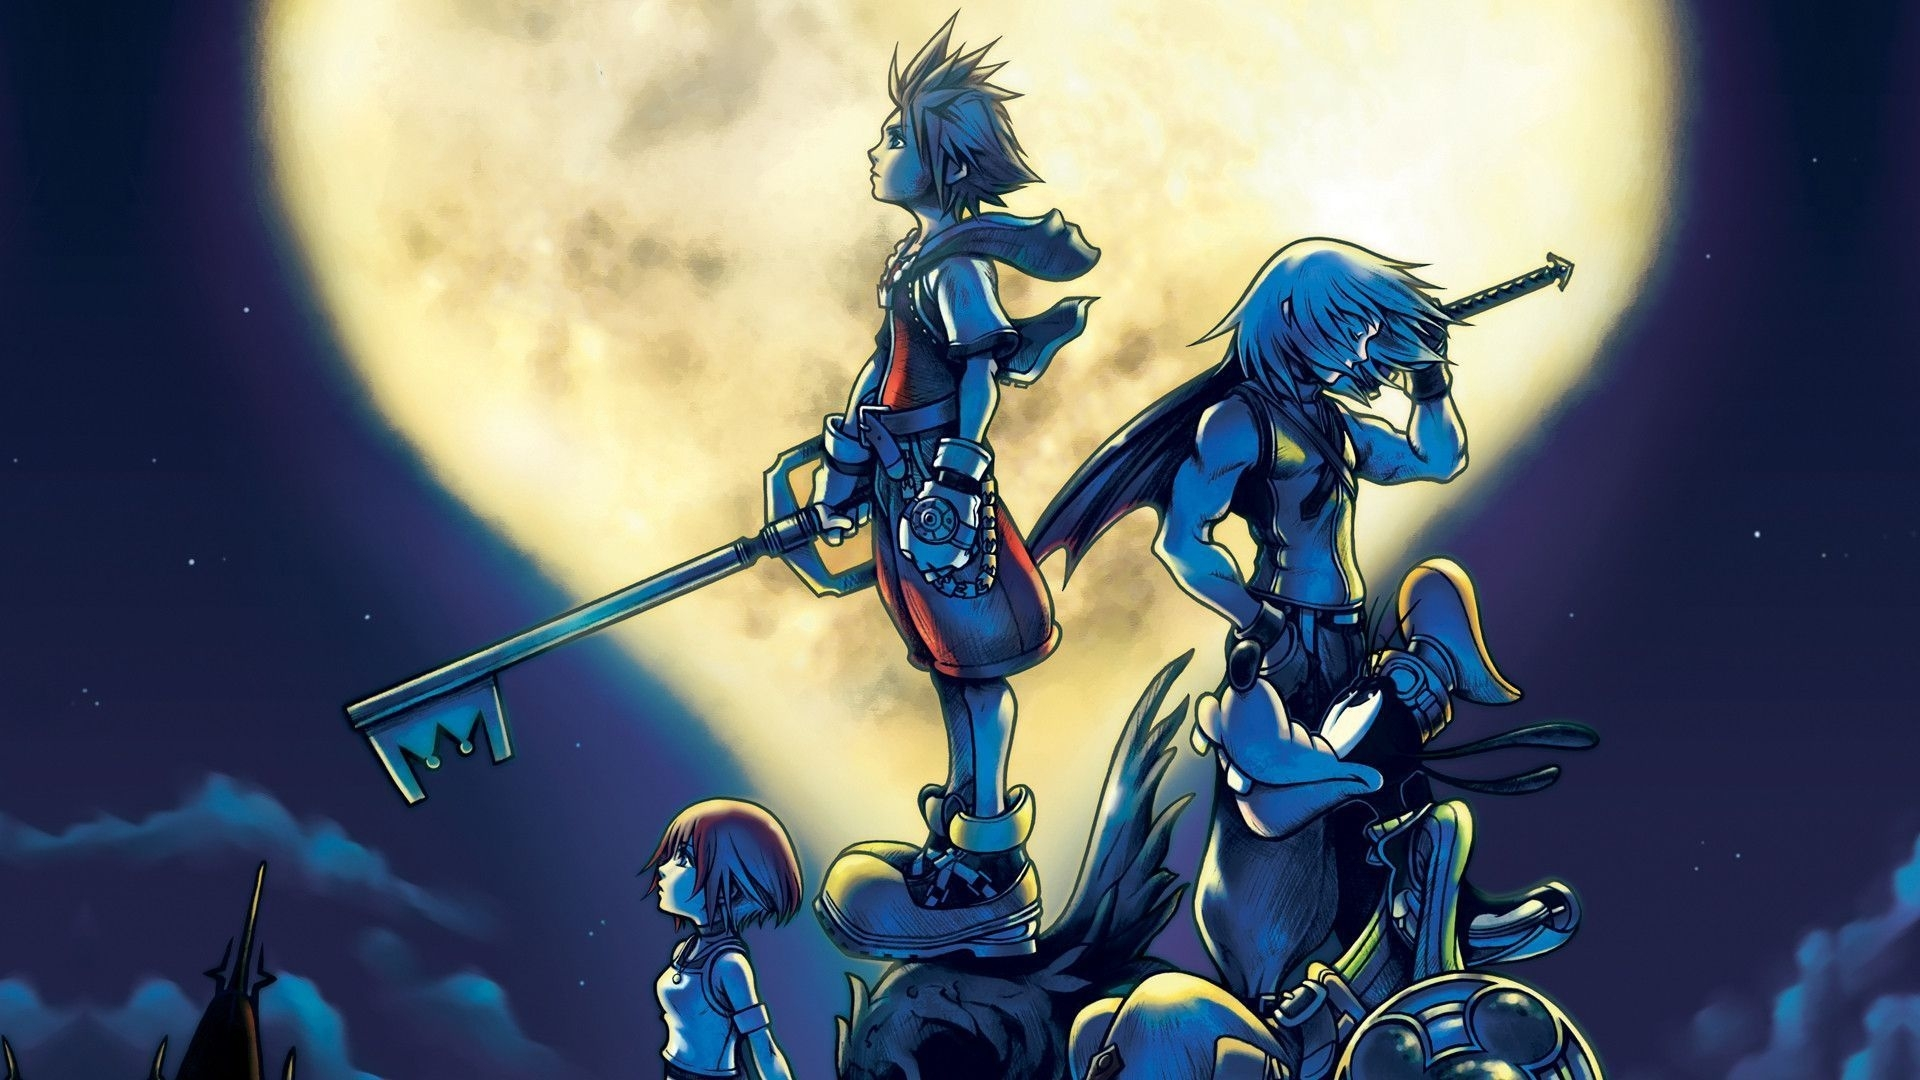 kingdom hearts sora image | meu | pinterest | wallpaper